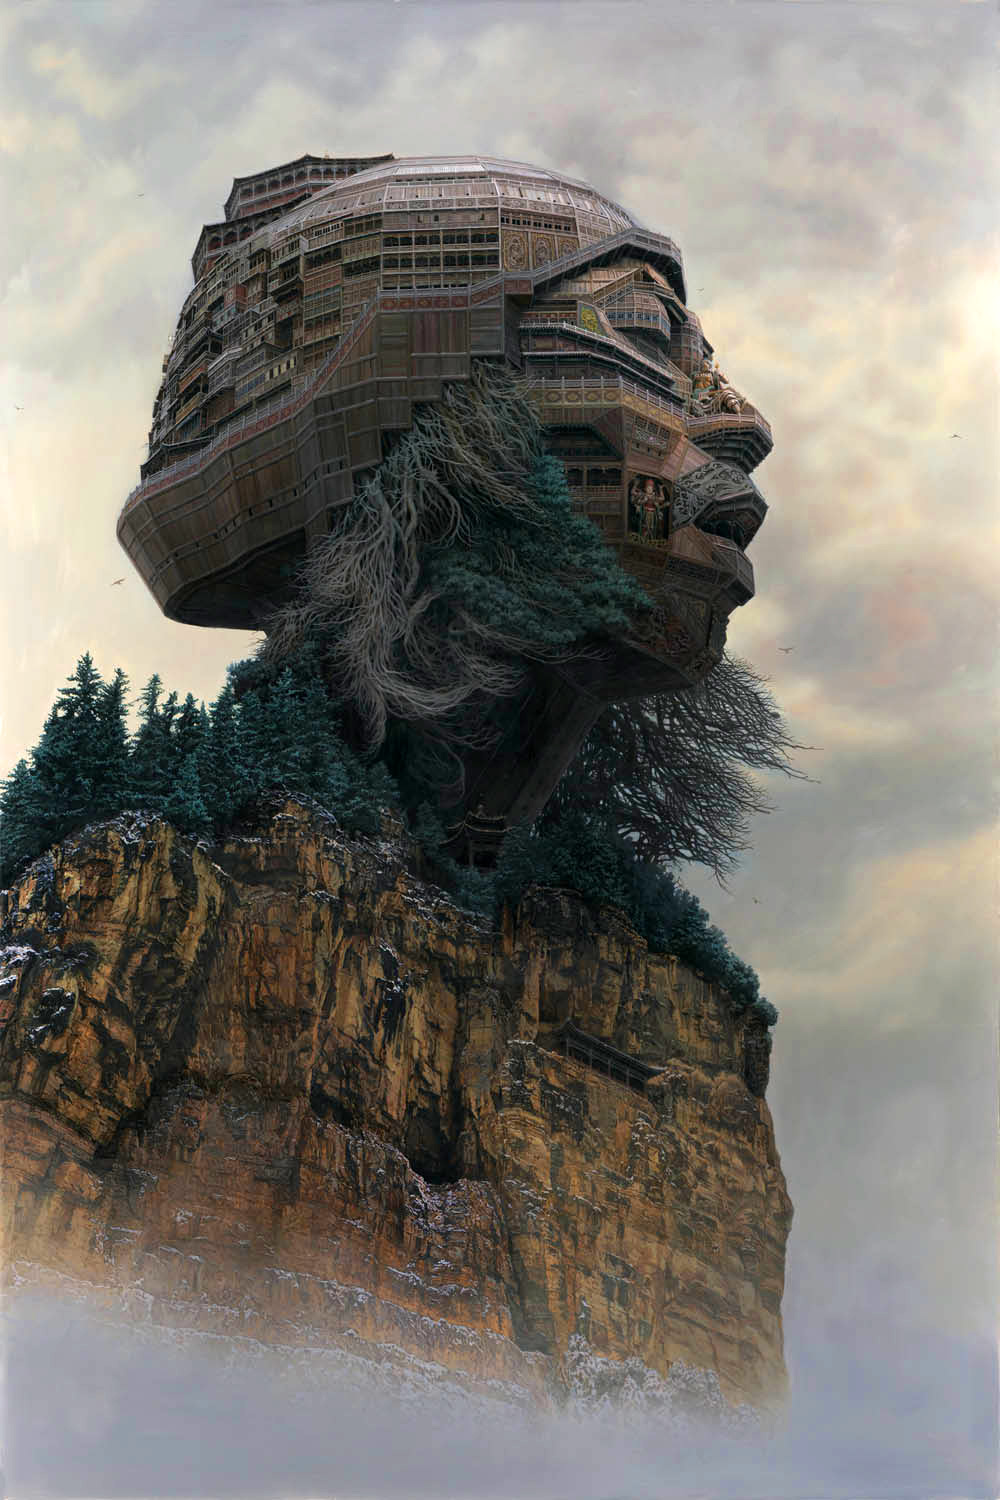 Portraits of Chinese Rockstars Imagined as Monumental Temples